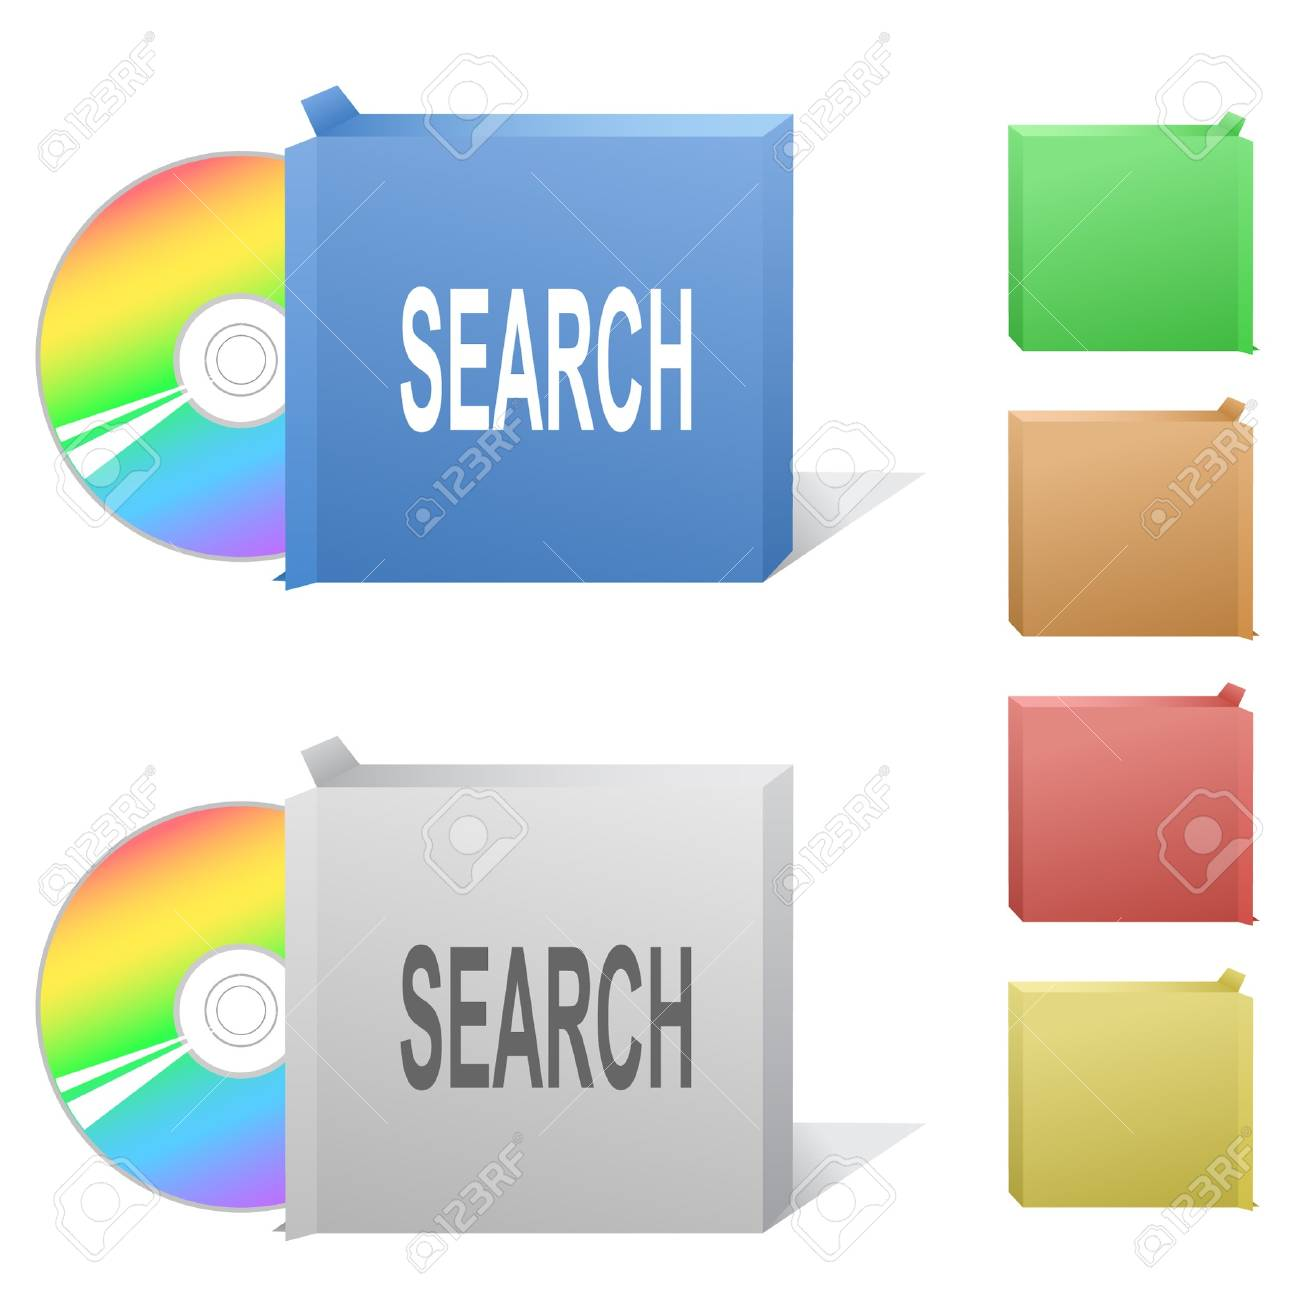 Search. Box with compact disc. Stock Vector - 6862511